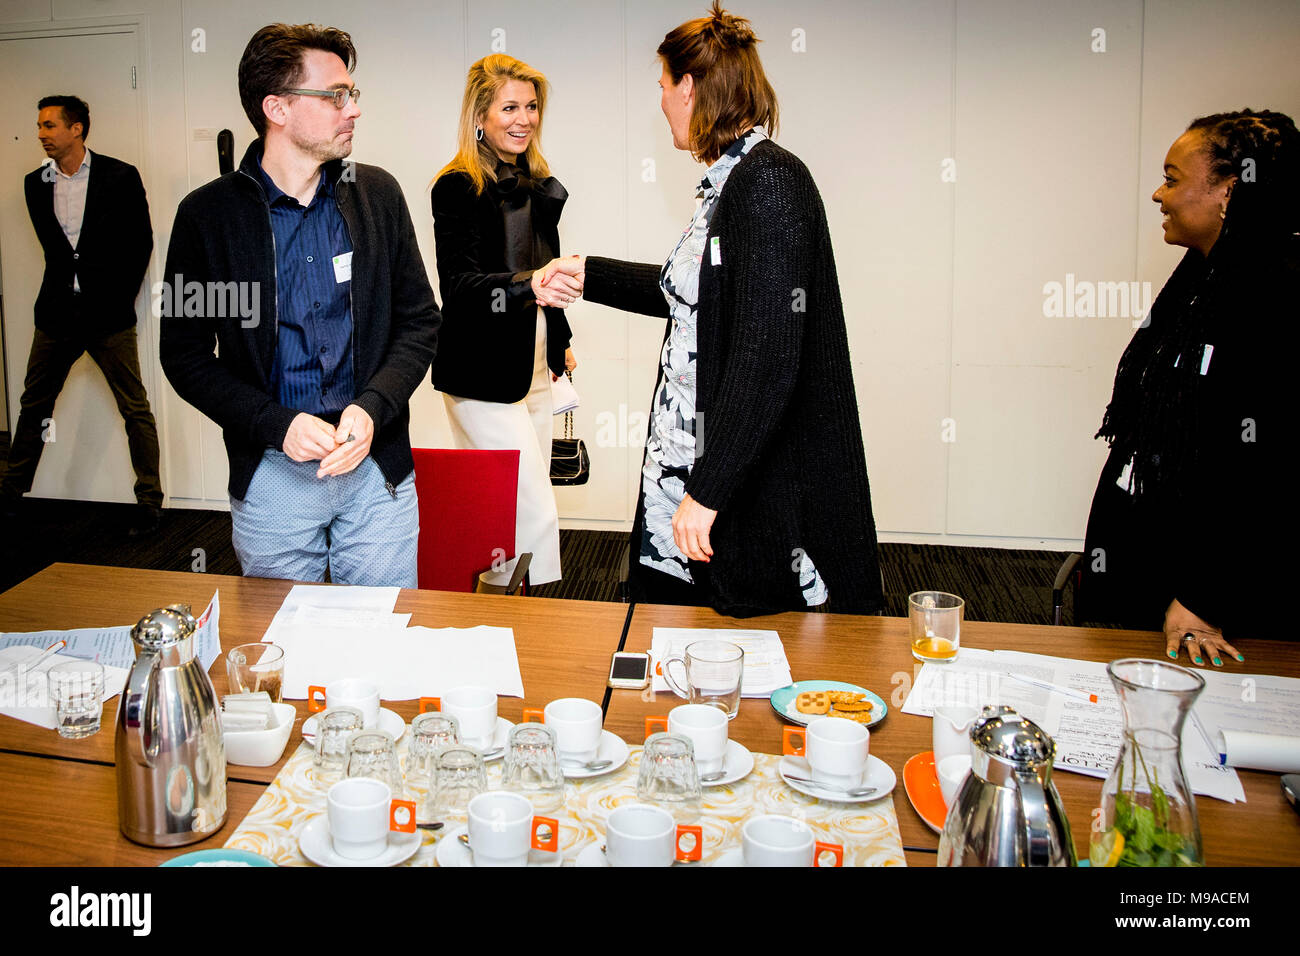 Doorn, The Netherlands. 23rd Mar, 2018. Queen Maxima of The Netherlands visits the meeting of Meer Kansen (more changes) of the Oranje Foundation in Doorn, The Netherlands, 23 March 2018. With the program more changes are offered to youth. Credit: Patrick van Katwijk - NO WIRE SERVICE · Credit: Patrick van Katwijk/Dutch Photo Press/dpa/Alamy Live News Stock Photo